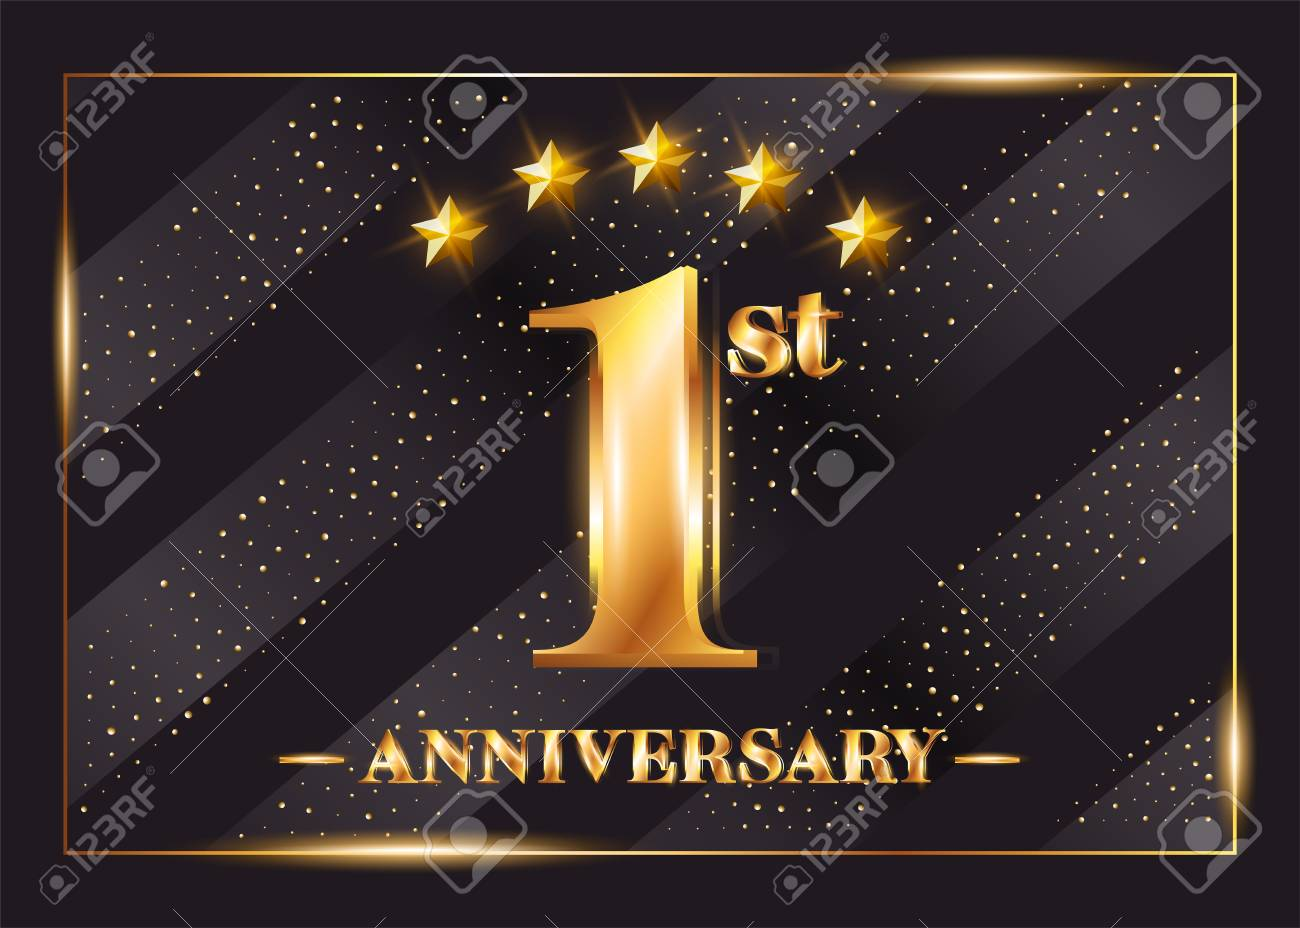 1 Year Anniversary Celebration Vector Logo 1st Anniversary Gold